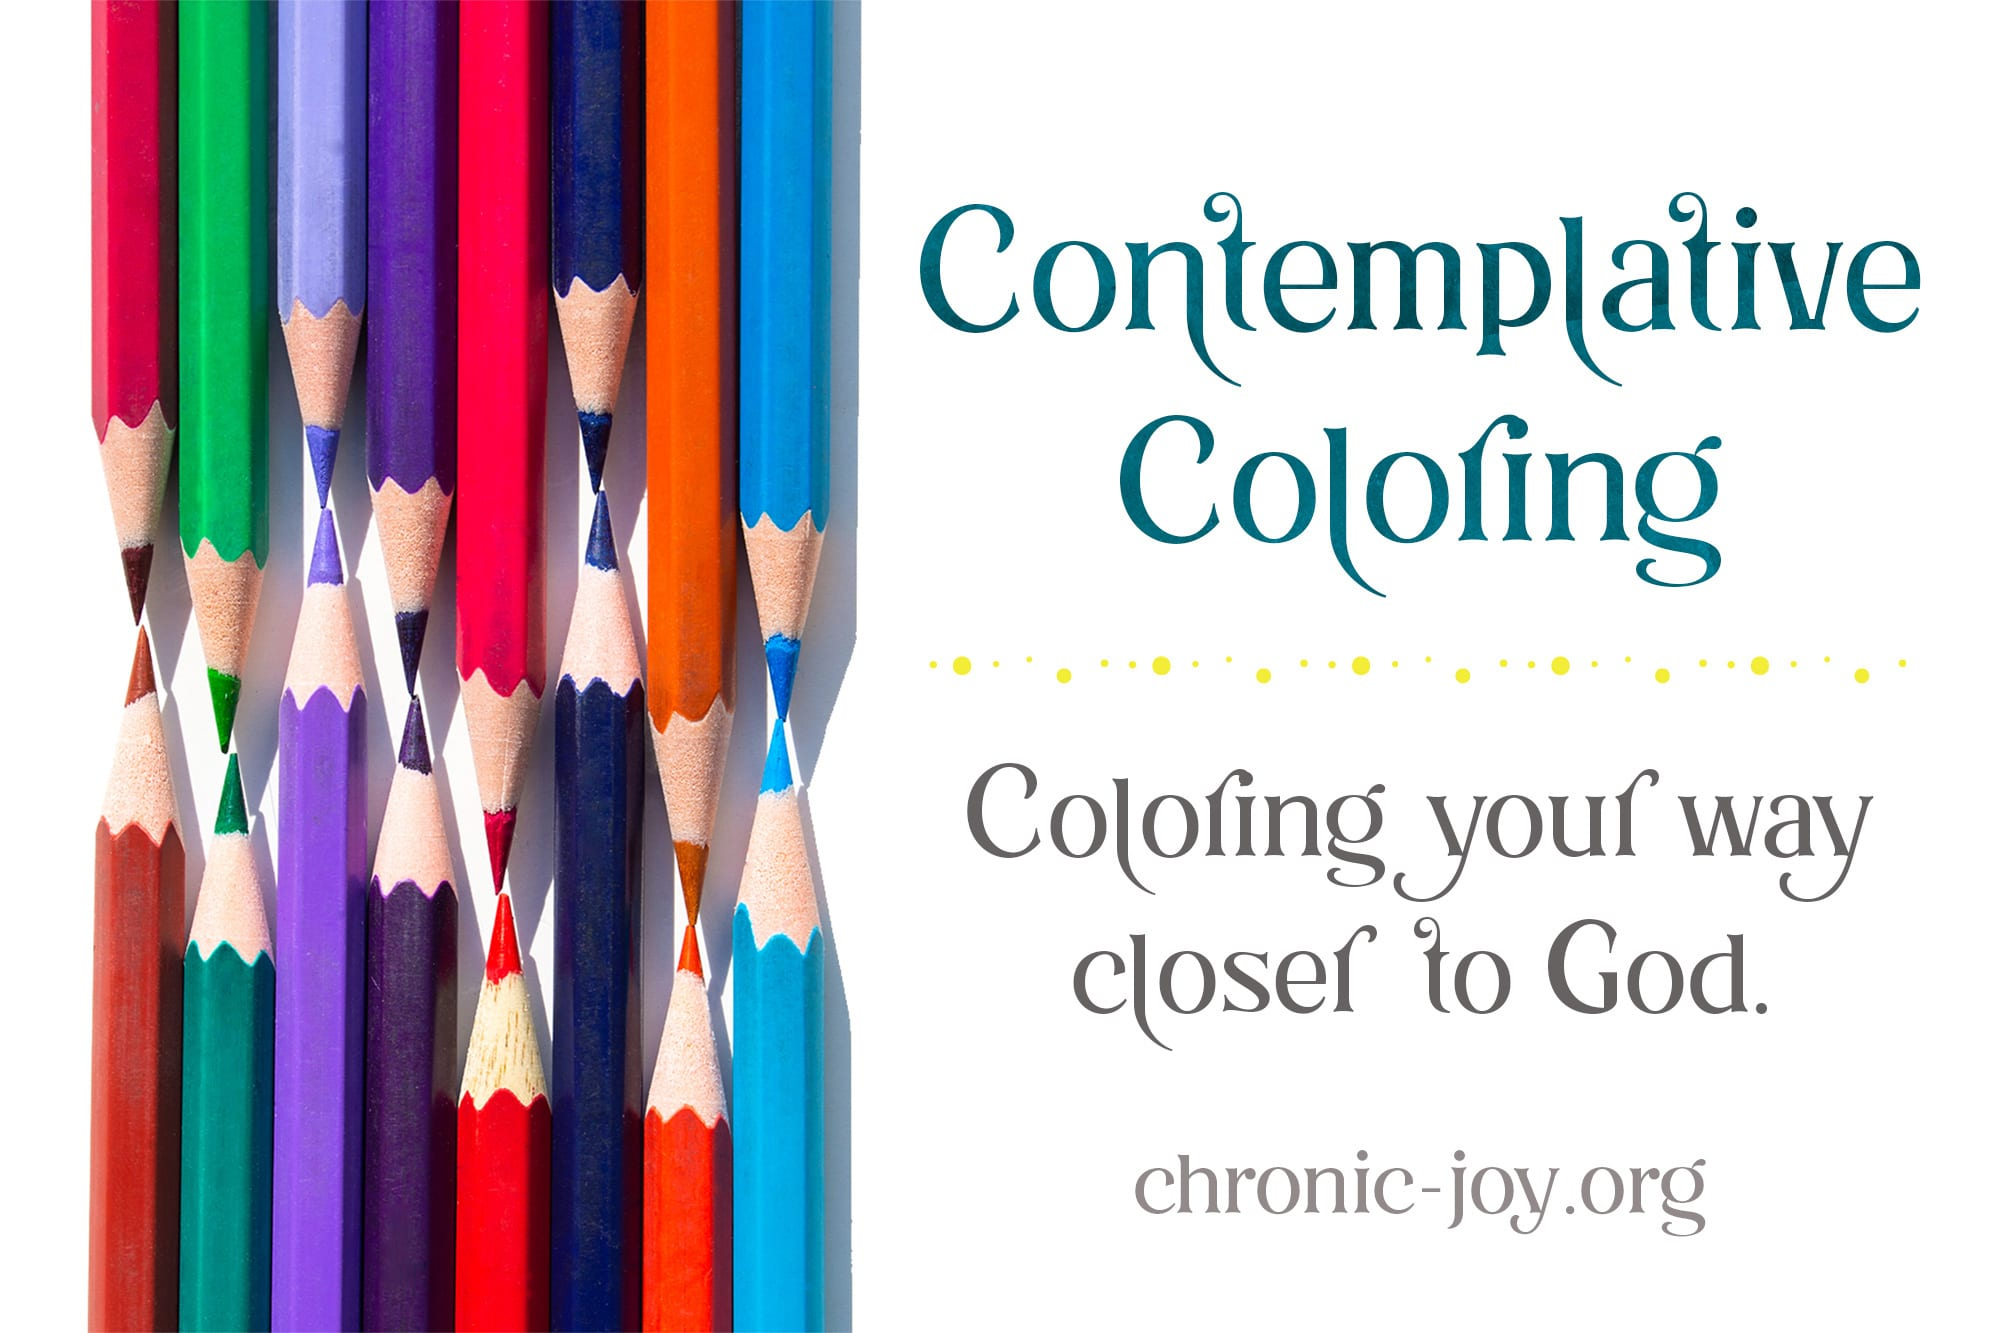 Contemplative Coloring • Coloring your way closer to God.